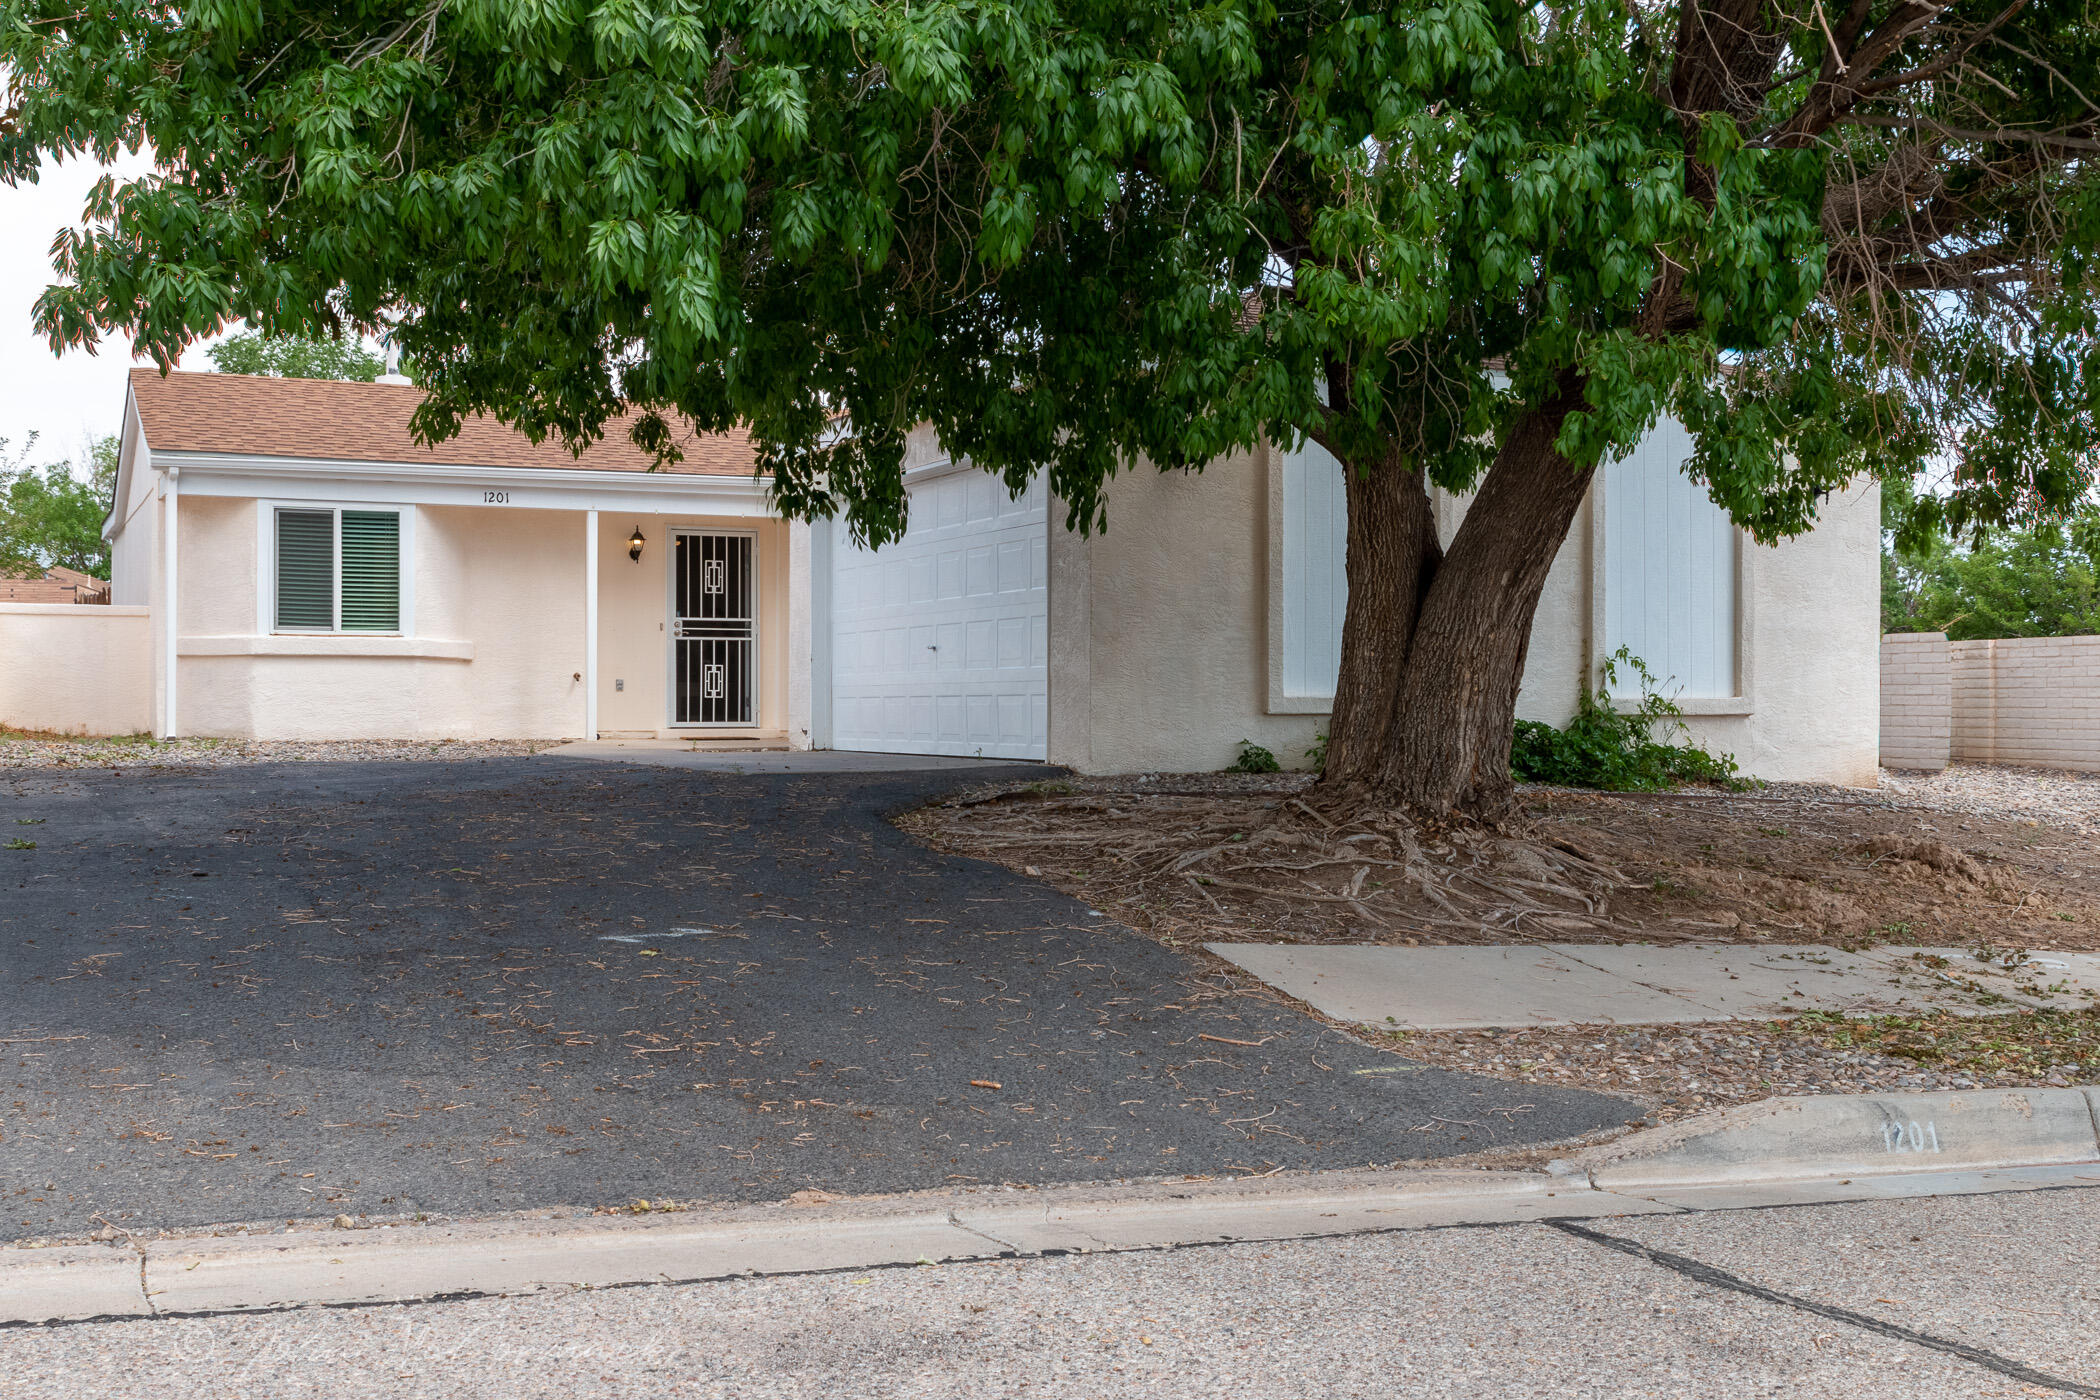 So many recent updates in this feature rich home! Come take a look at this 2 Bedroom, 1 Bath, Large 2 Car Garage home on a big corner lot! Tile throughout except the 2 Bedrooms.  Re-Piped (No poly). Some of the many updates from 2018 include Roof, Water Heater, Furnace, Windows, Front Door, Garage Opener, Light Fixtures, Hardware, Kitchen Countertops, Cabinets, Backsplash, Dishwasher, Microwave, Gas Range, Refrigerator, Carpeting, Bath Tub, Vanity, Dual Flush Toilet, Interior and Exterior Paint, Window Blinds and more.  Easy living floor plan, great color scheme. This one is ready to call home!